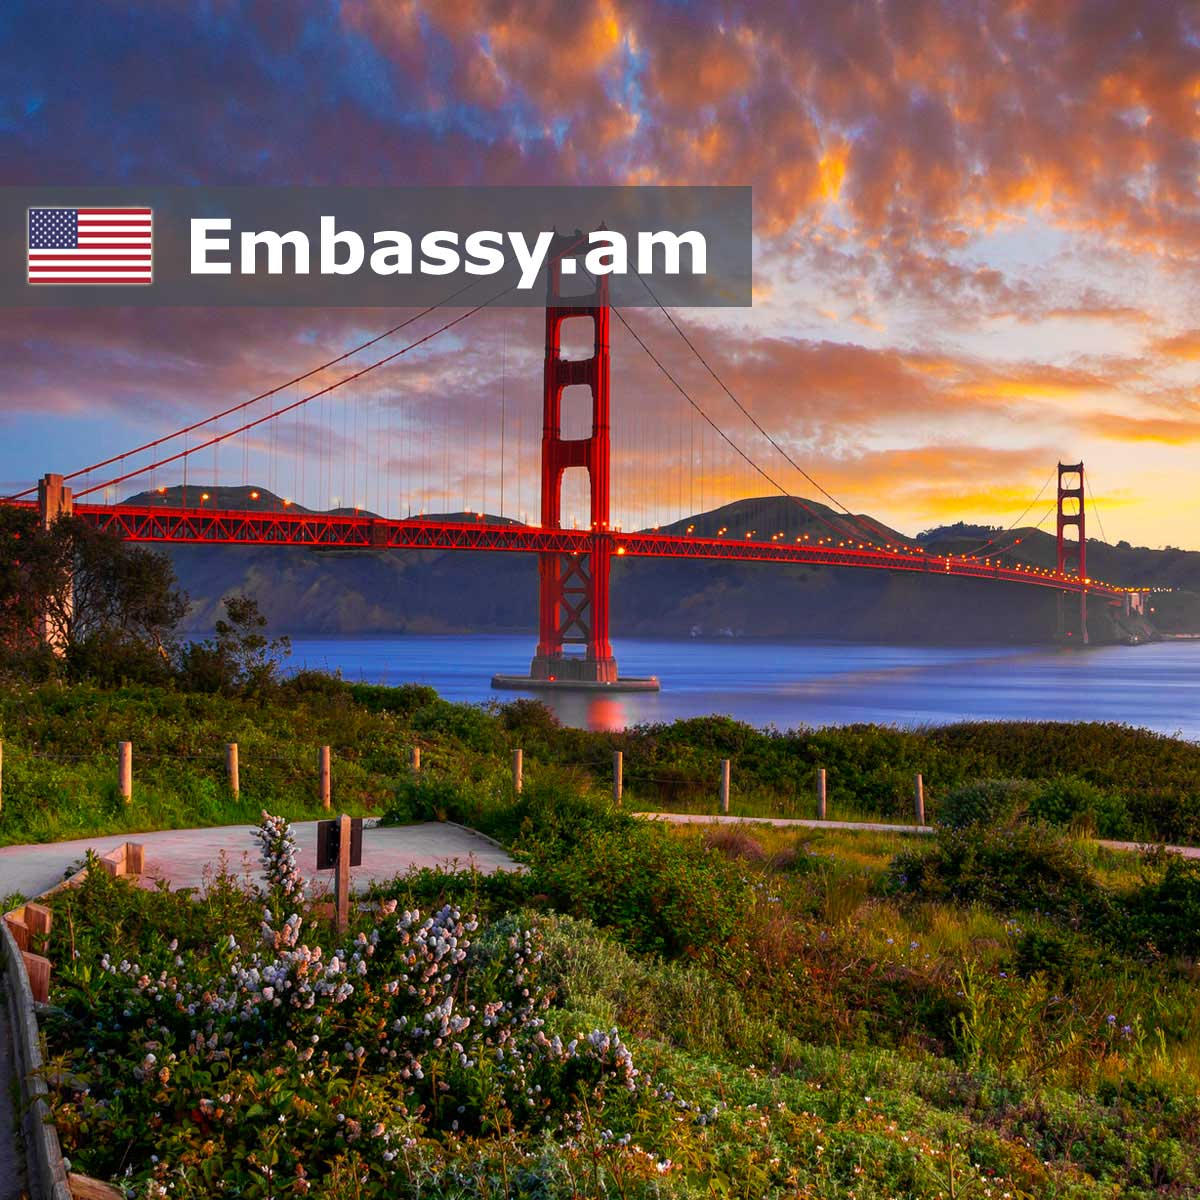 San Francisco - Hotels in United States of America - Embassy.am